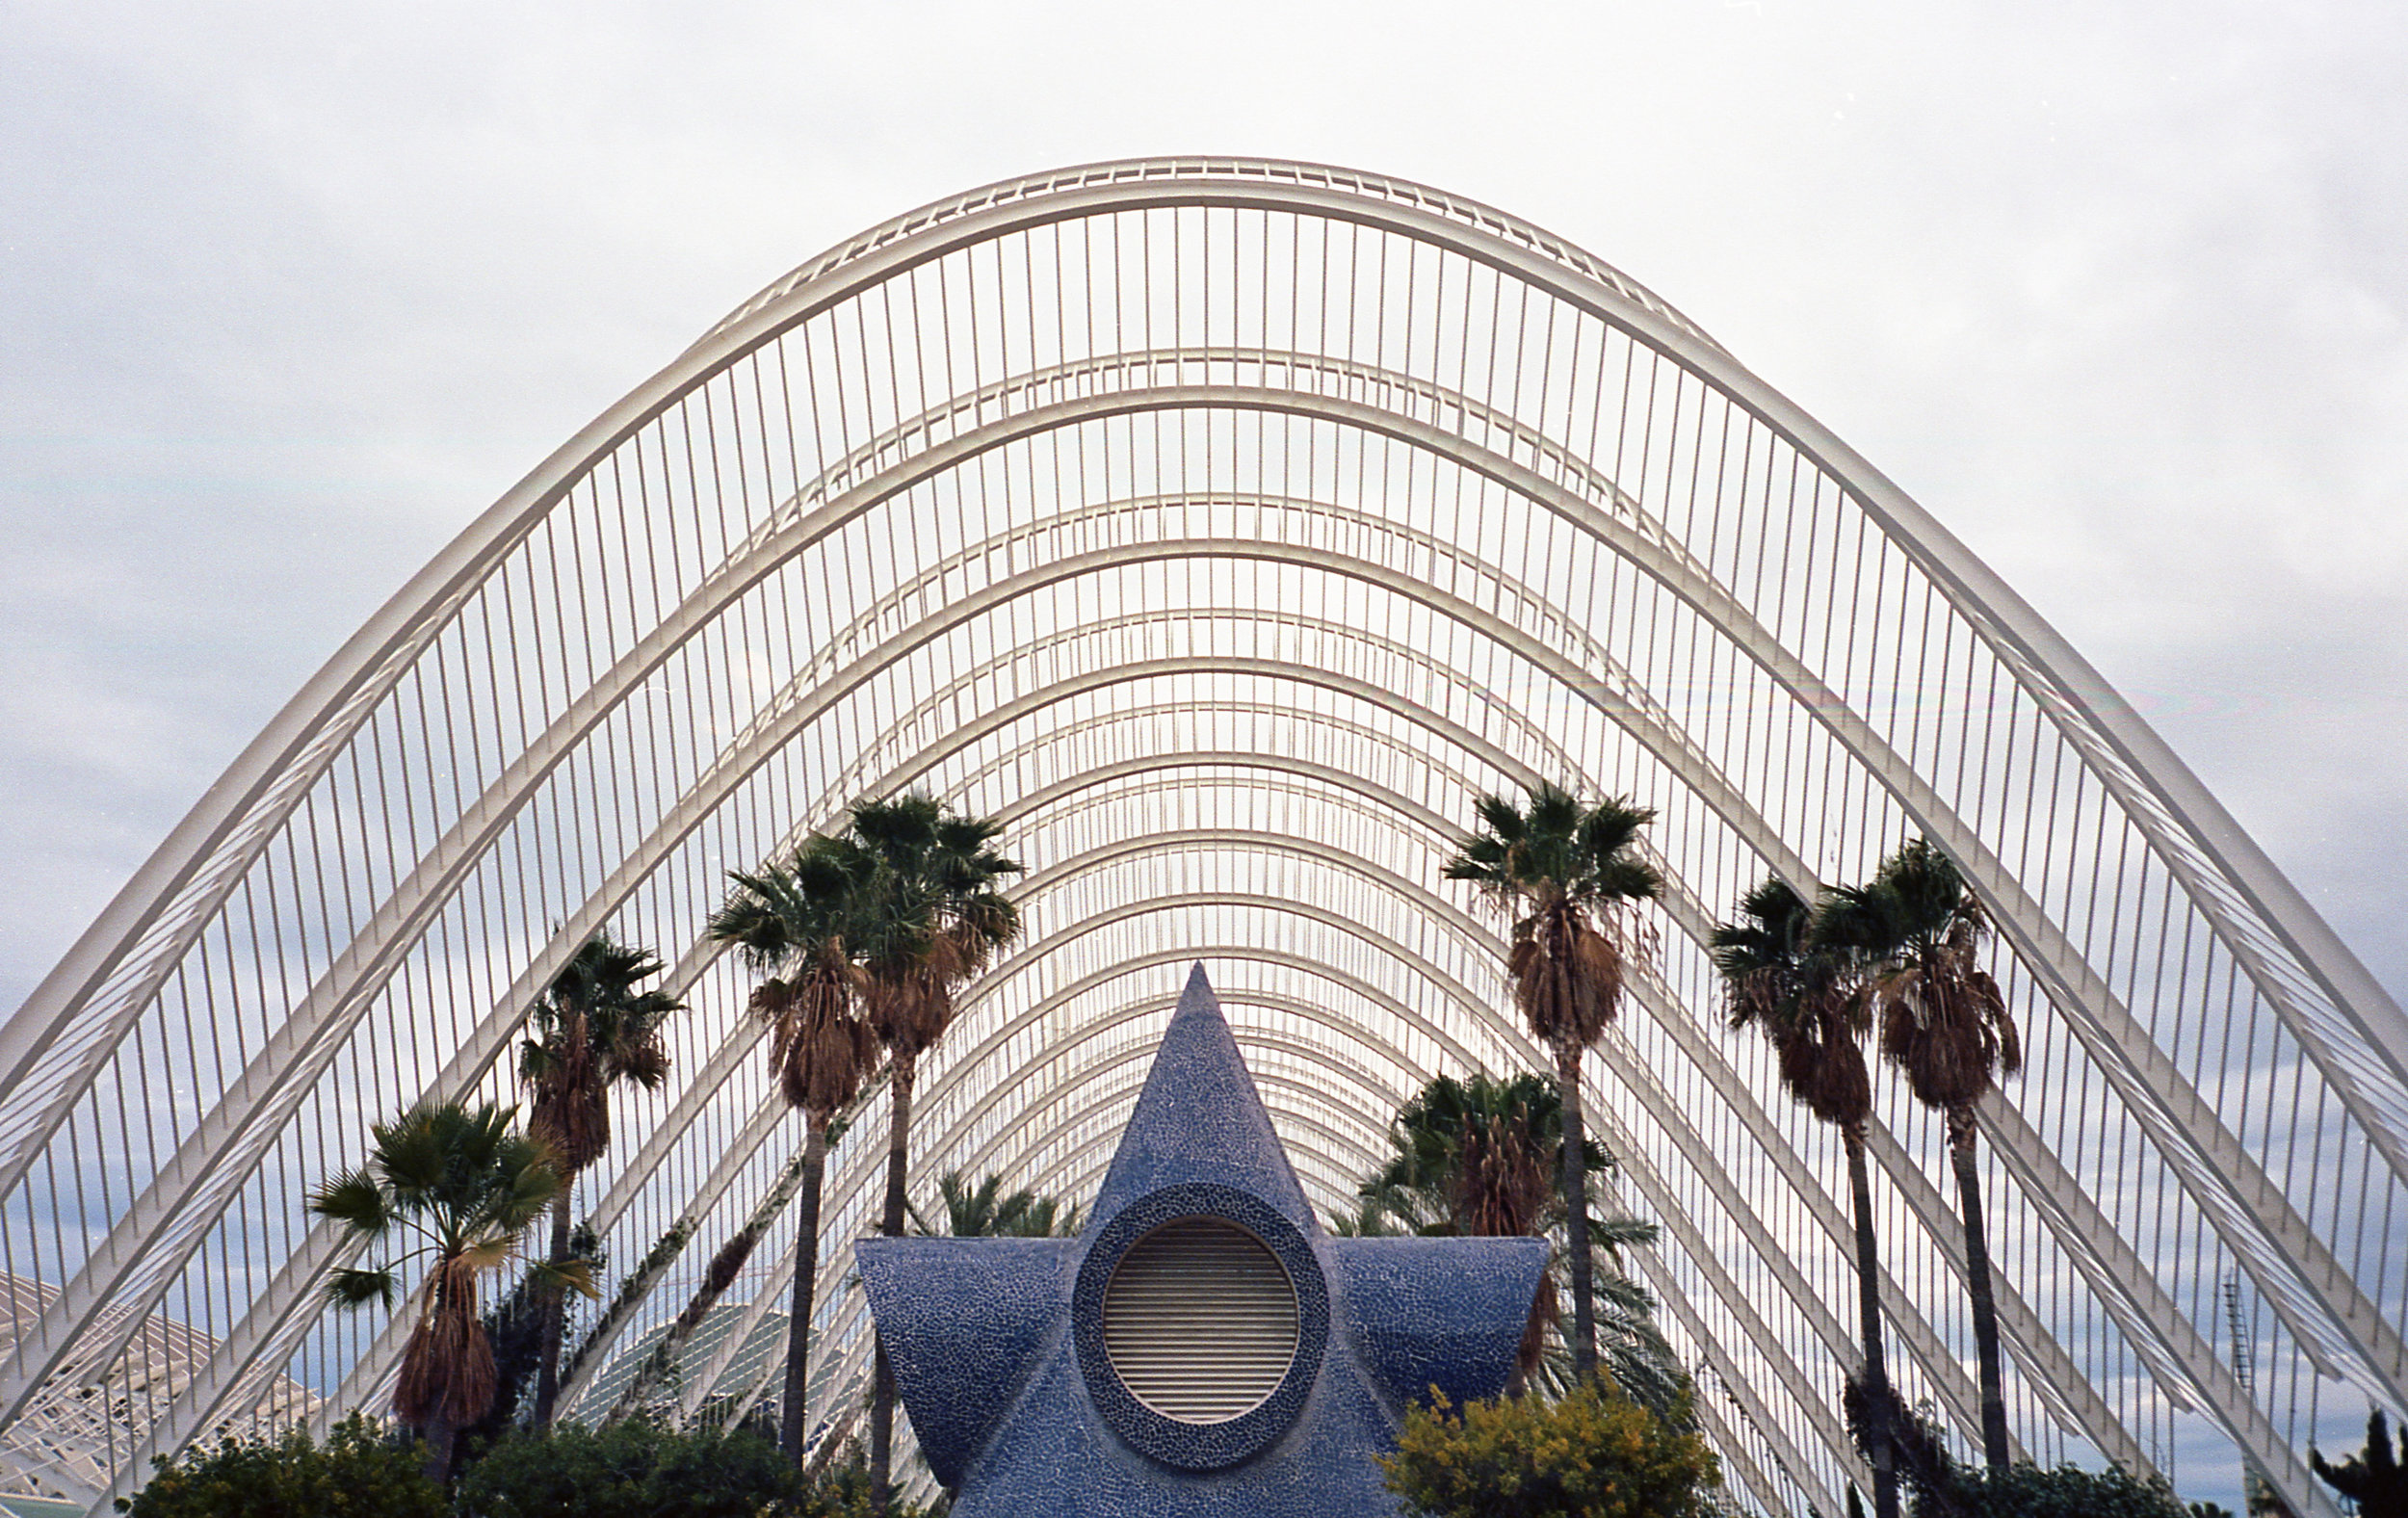 City of Arts and Sciences, L'Umbracle, Valencia, Nikon F3, Cinestill 50D